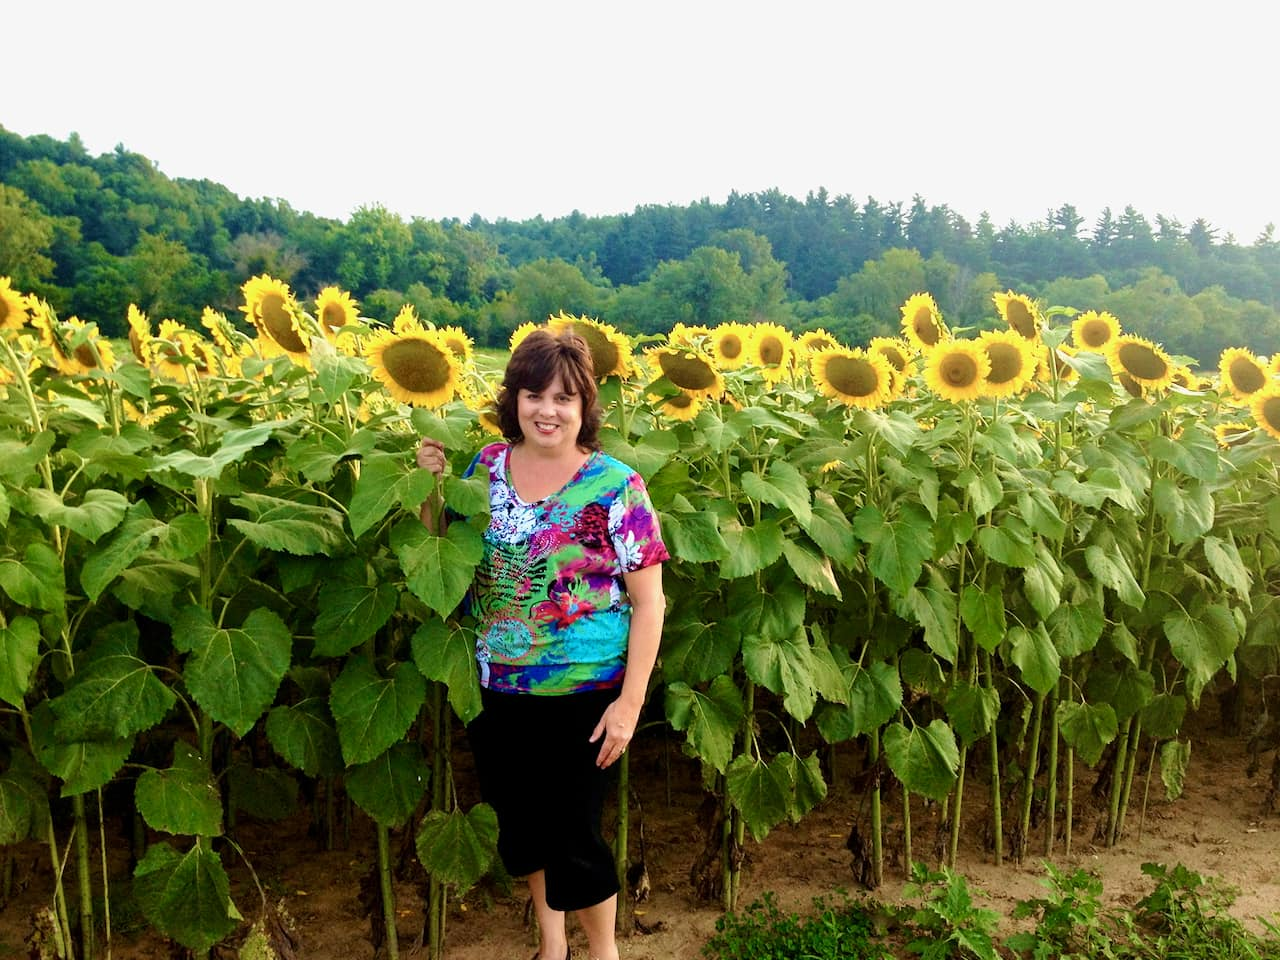 photo of Debi, the author of Quiche My Grits, in a field of sunflowers at Biltmore Estate